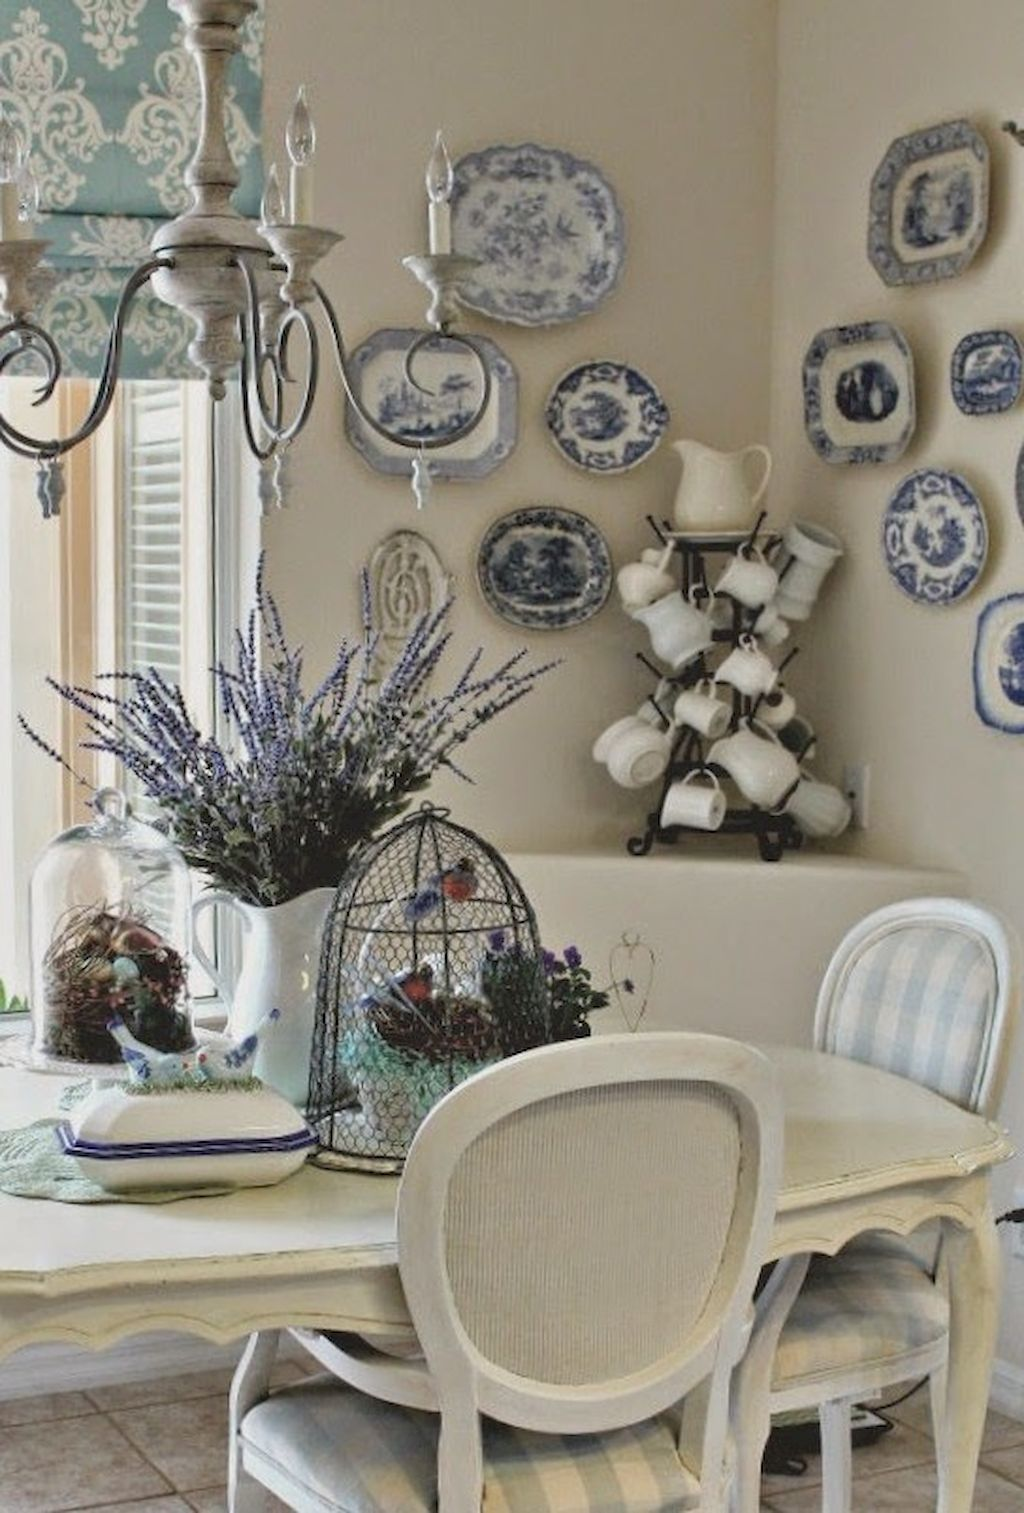 French Country Dining Room Table and Decor Ideas